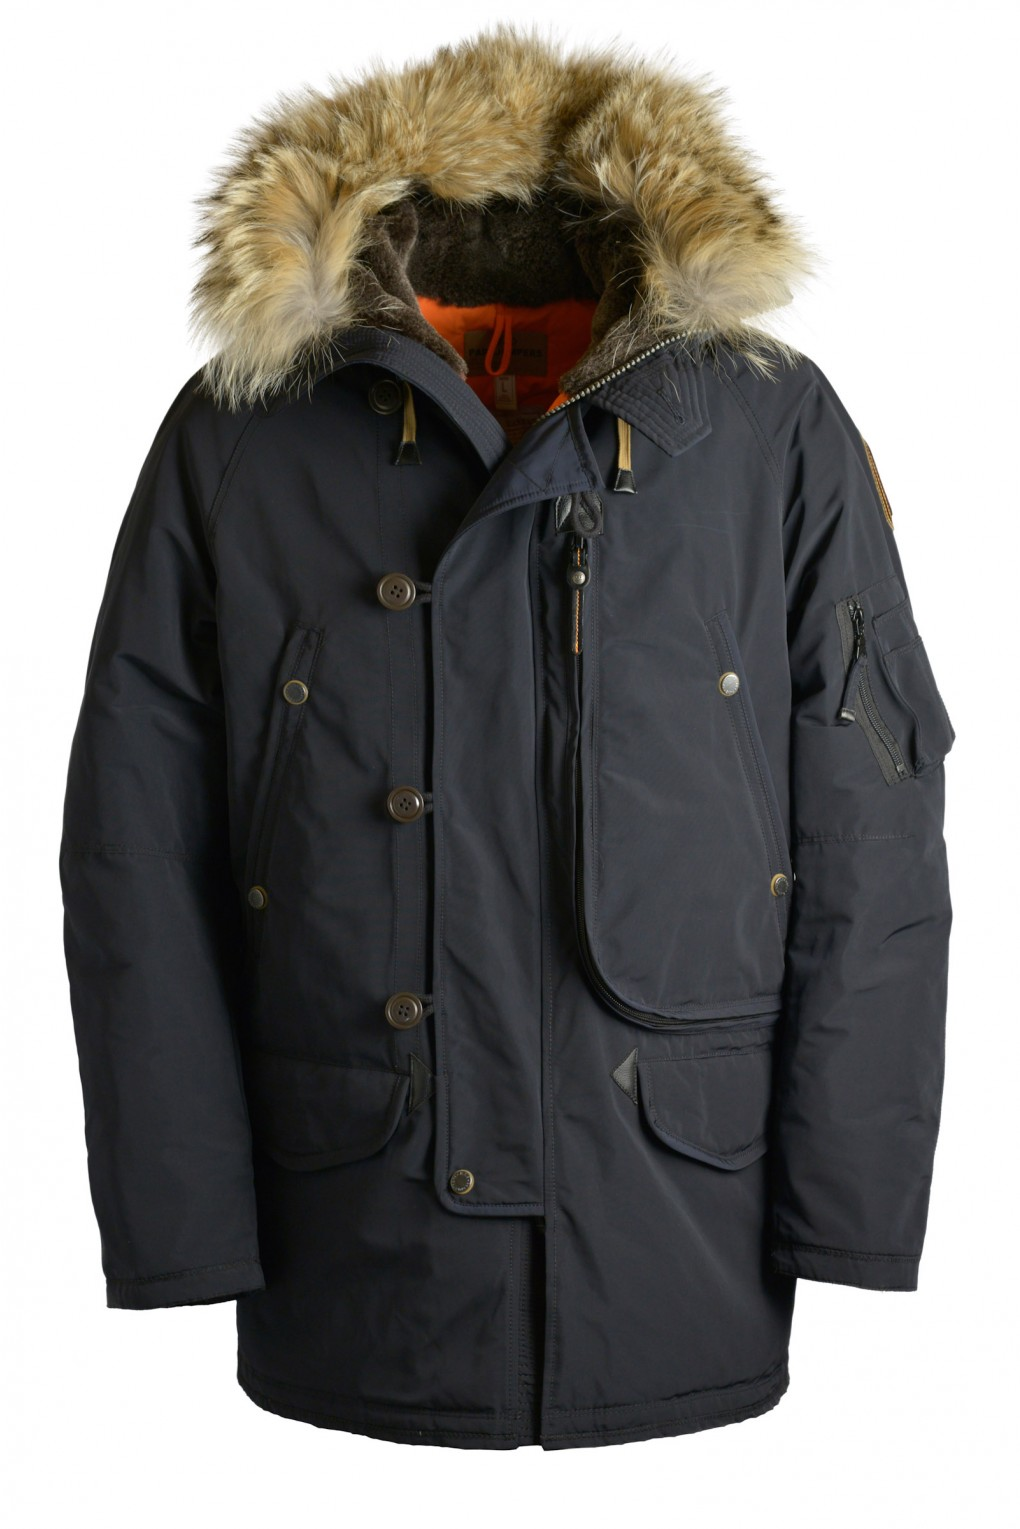 parajumpers TYPE N-3B man outerwear Blue Black